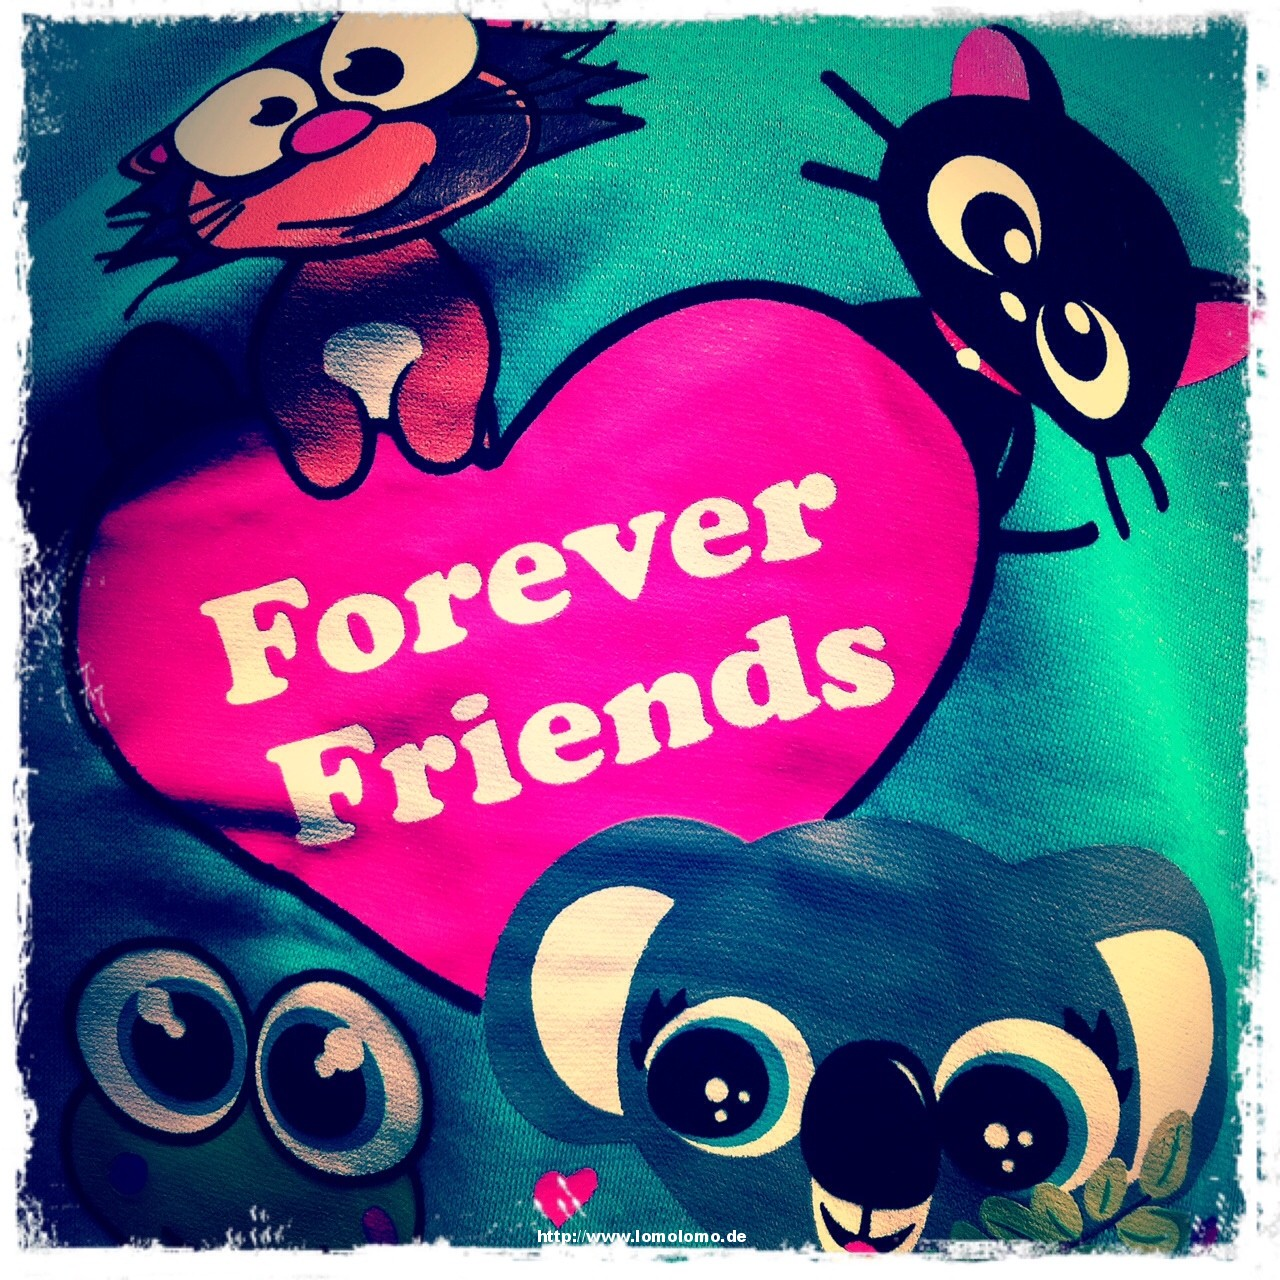 Forever Friends image for Fb Share